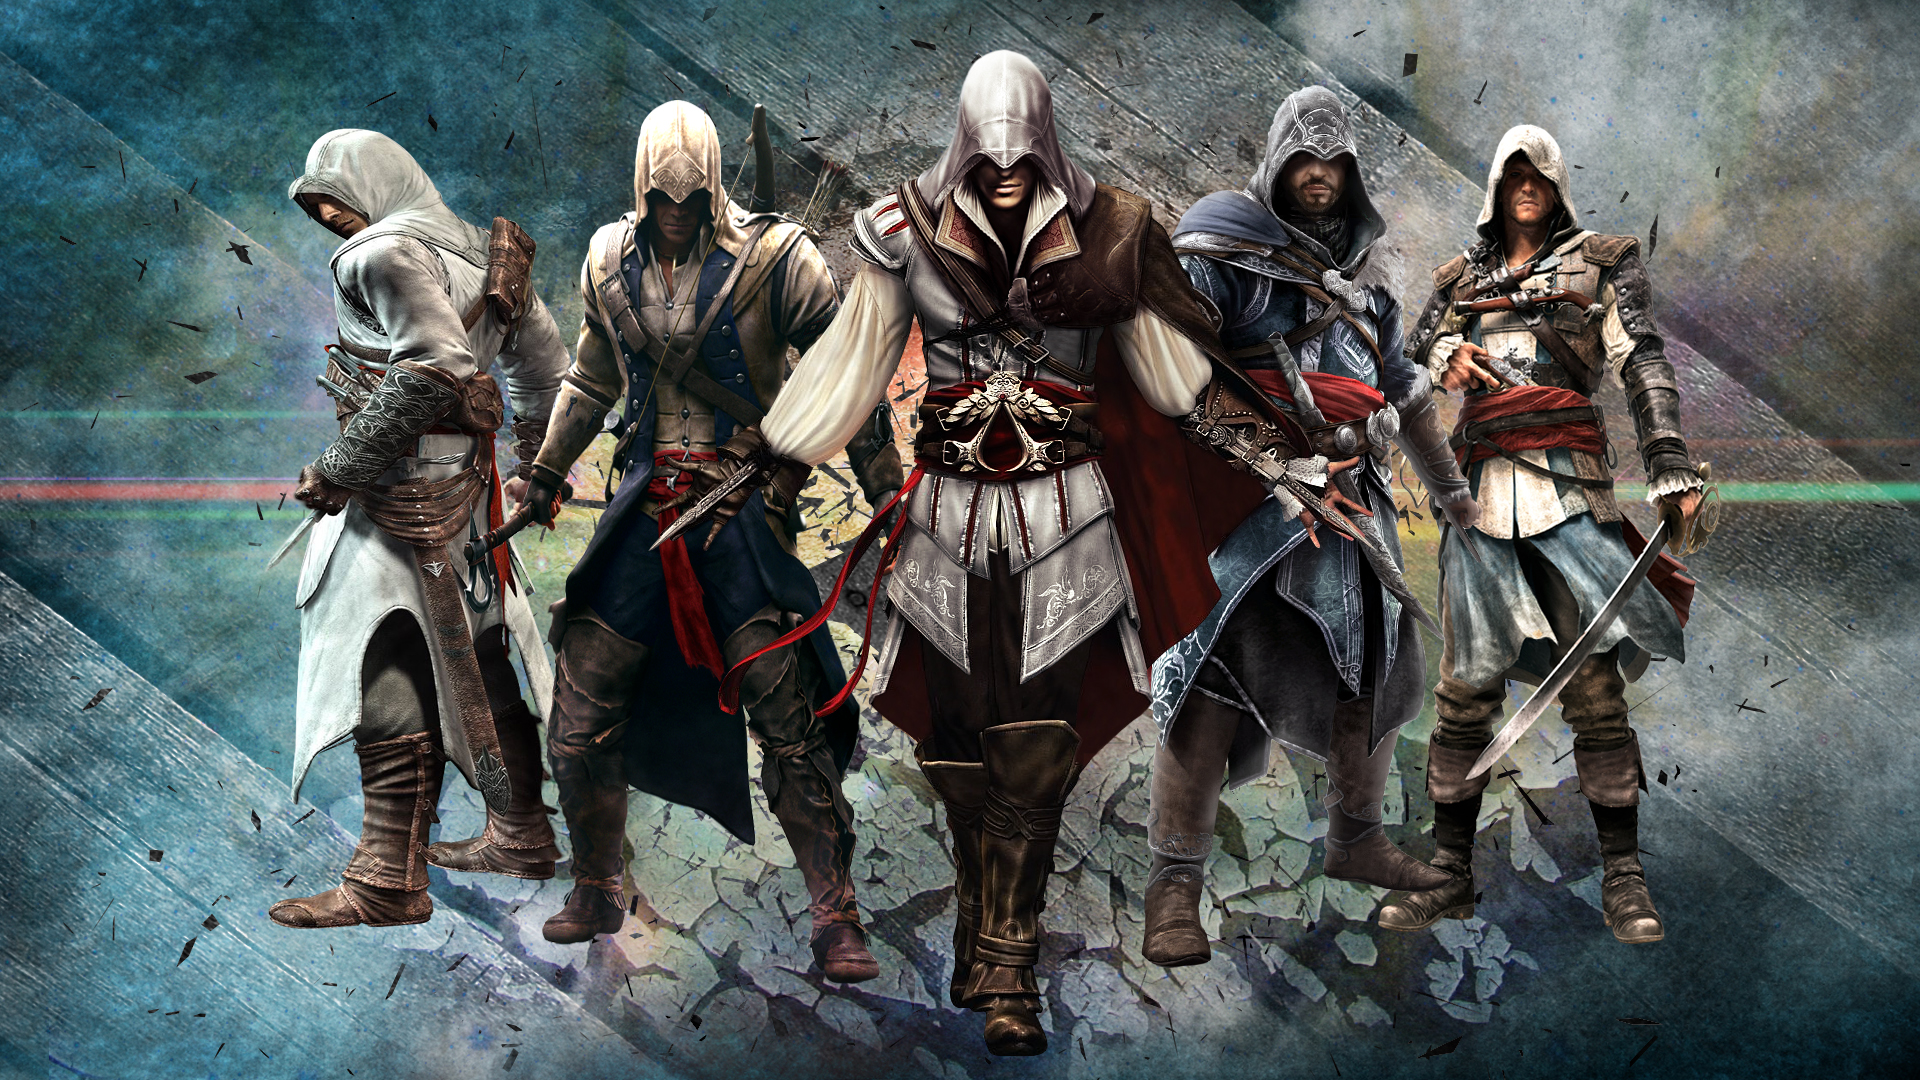 Free Download File Name 971833 Awesome Assassins Creed Hd